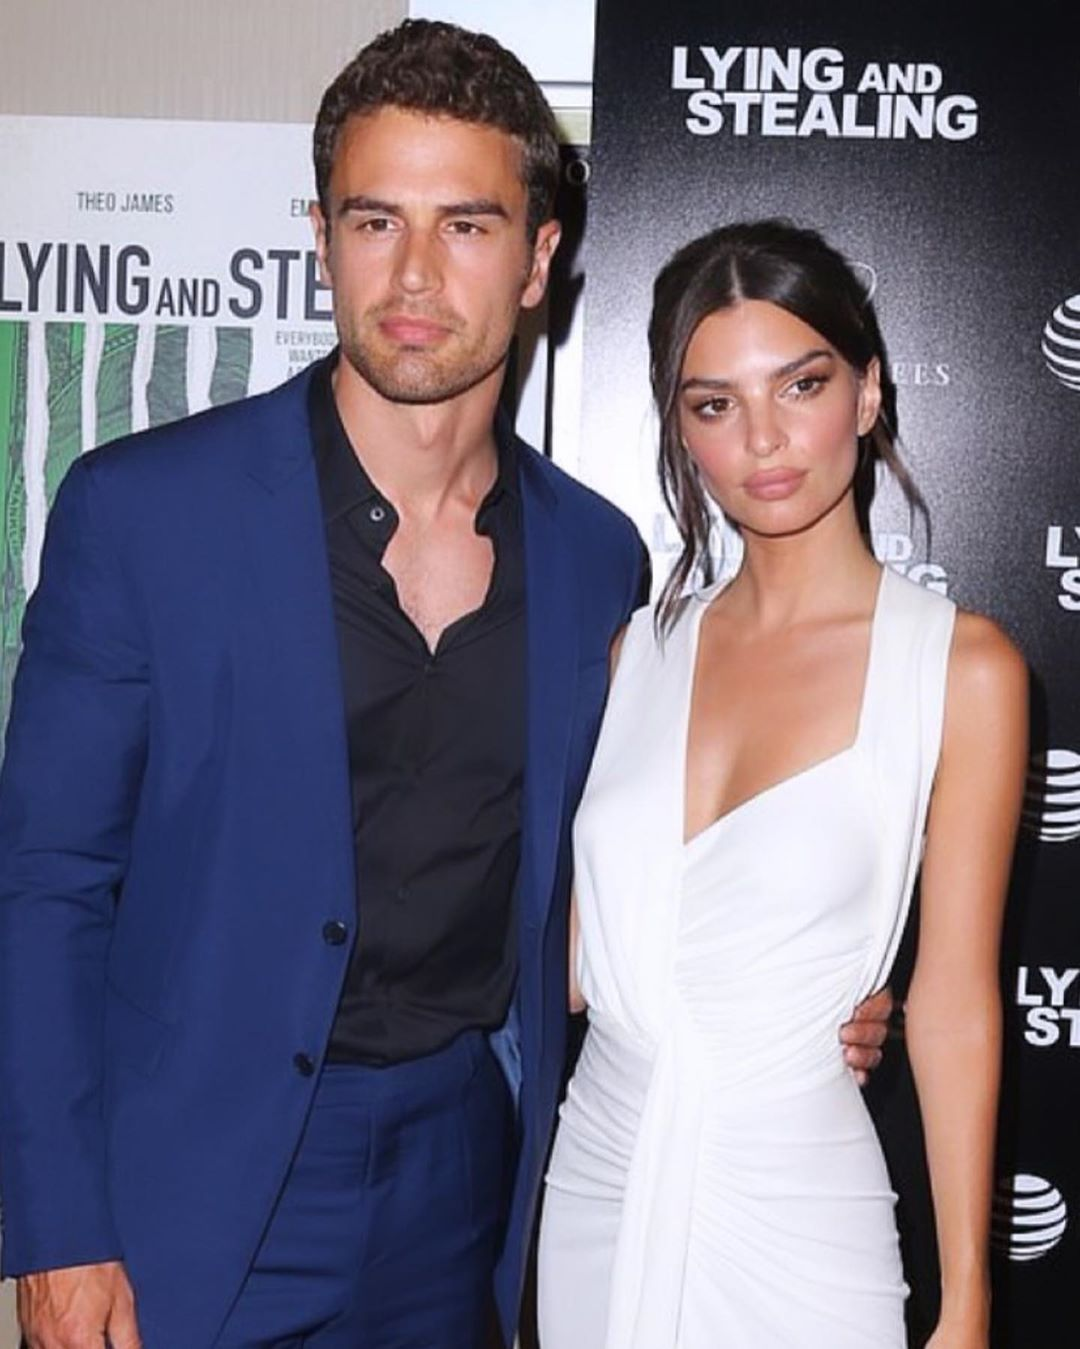 #aboutlastnight Great to host the @lyingandstealing premier party starring @emrata and #theojames #emrata